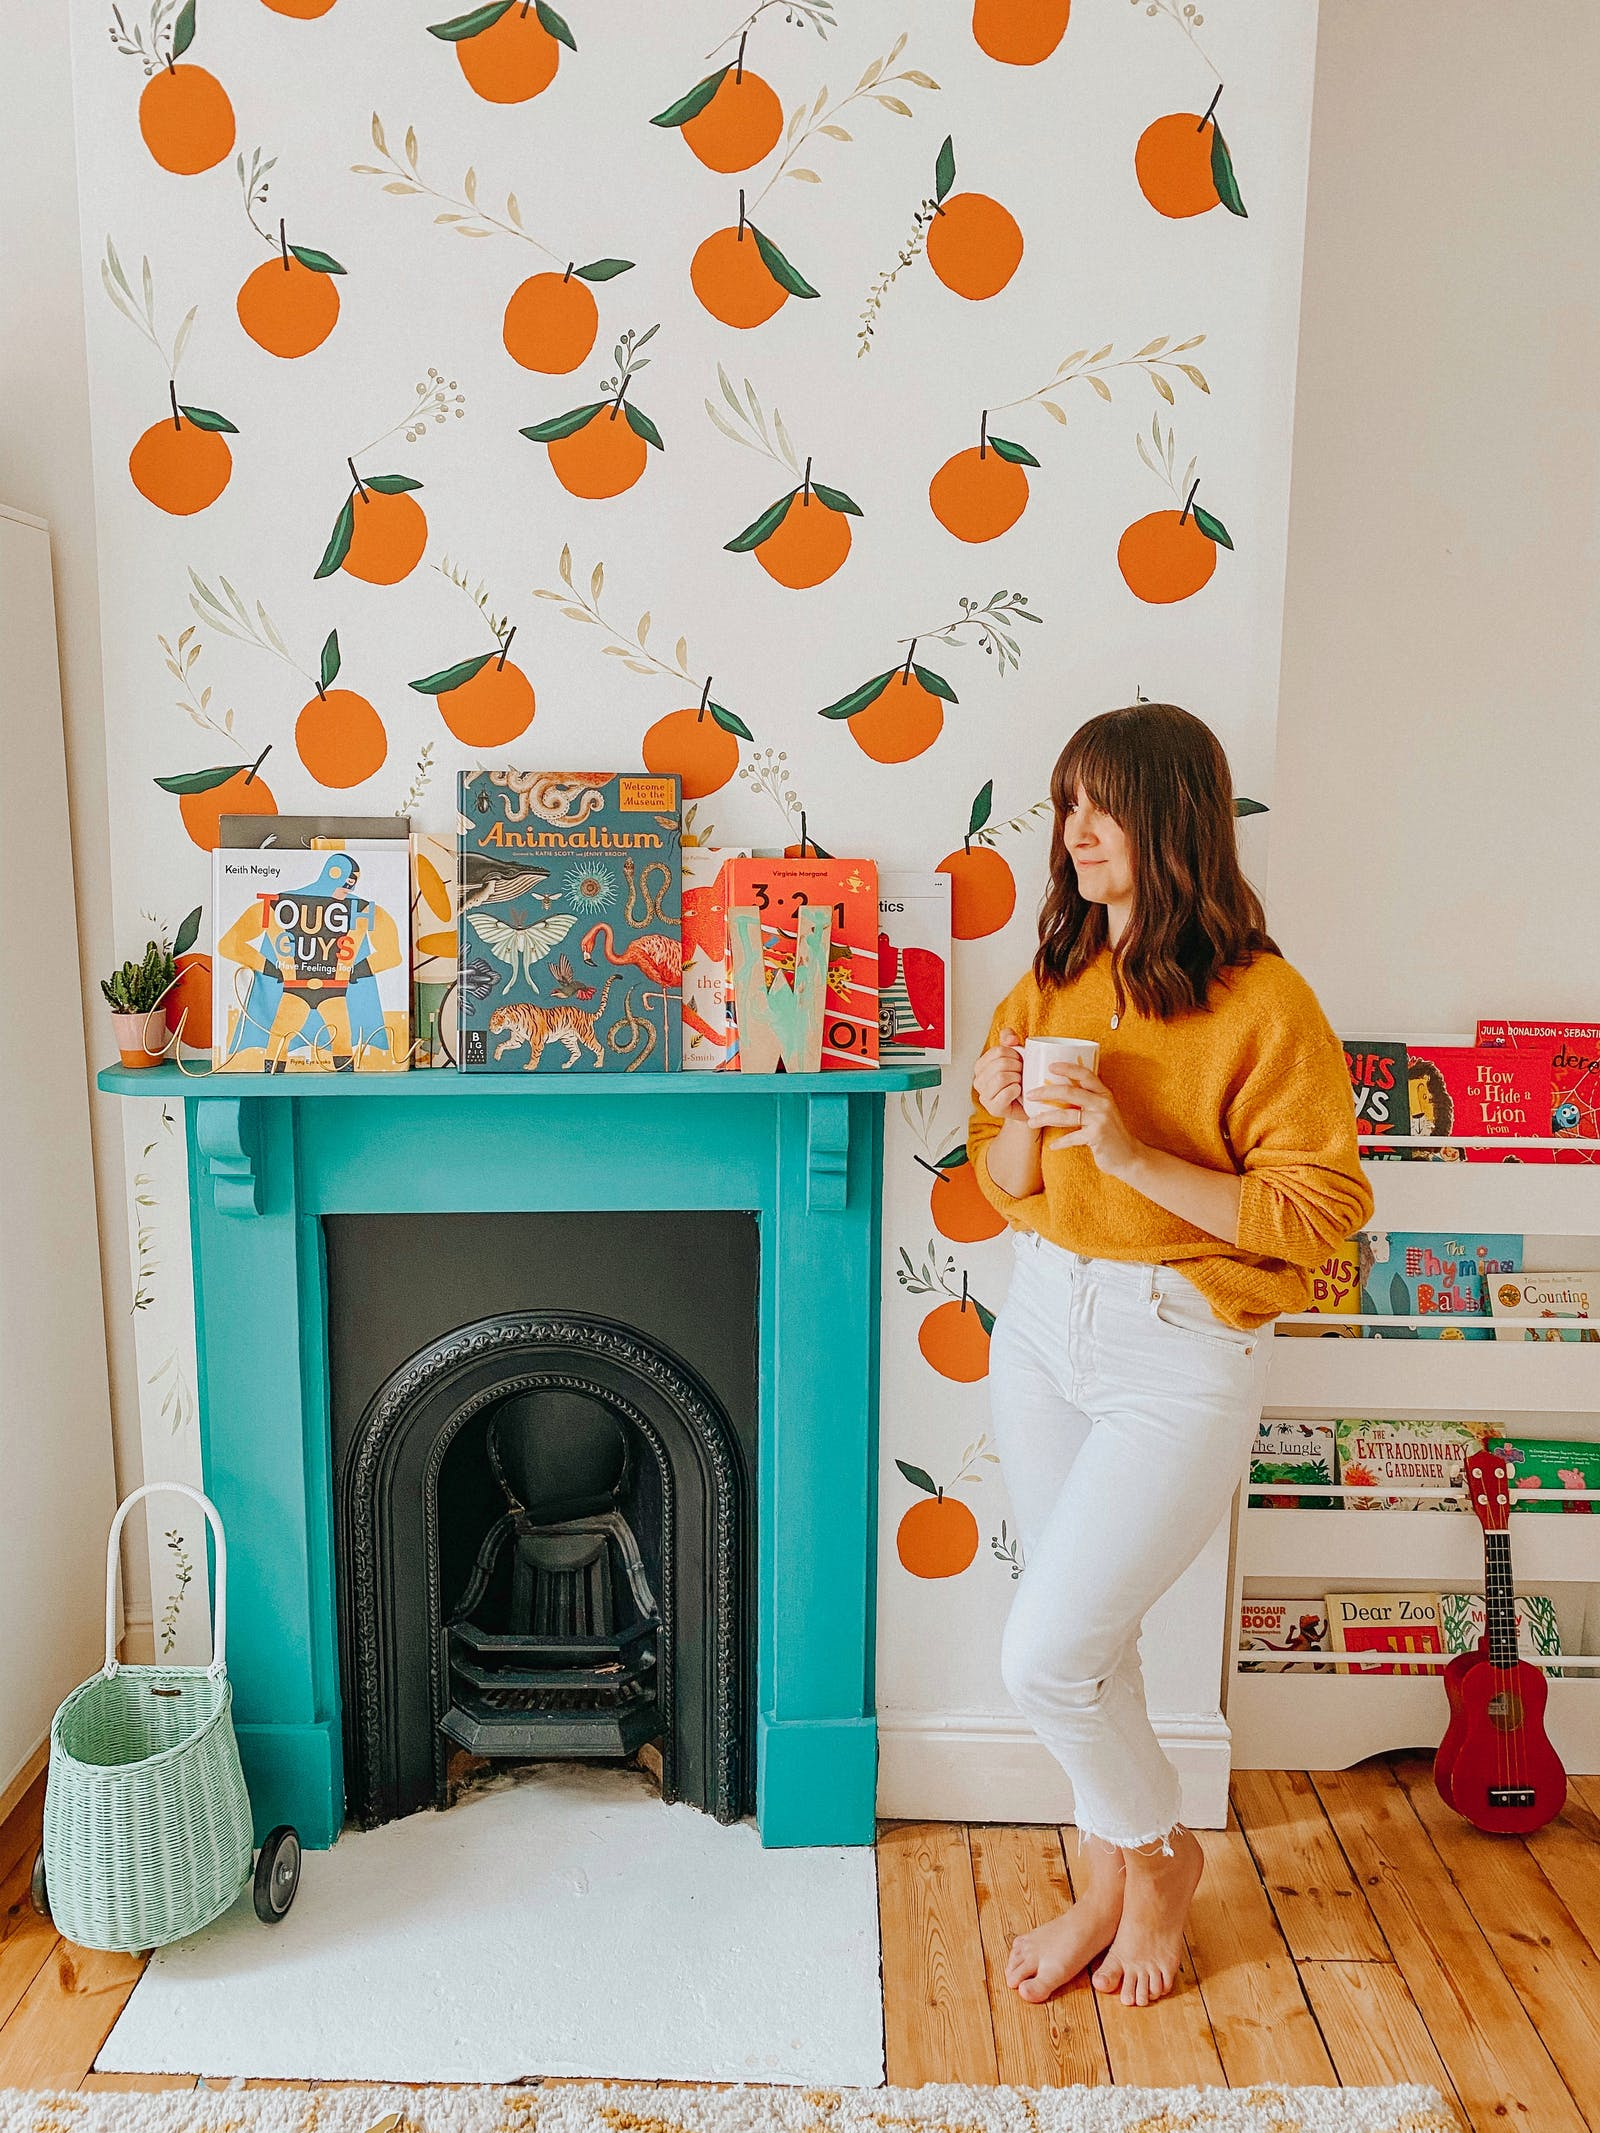 Brunette woman standing in front of turquoise fireplace with orange illustrated wallpaper